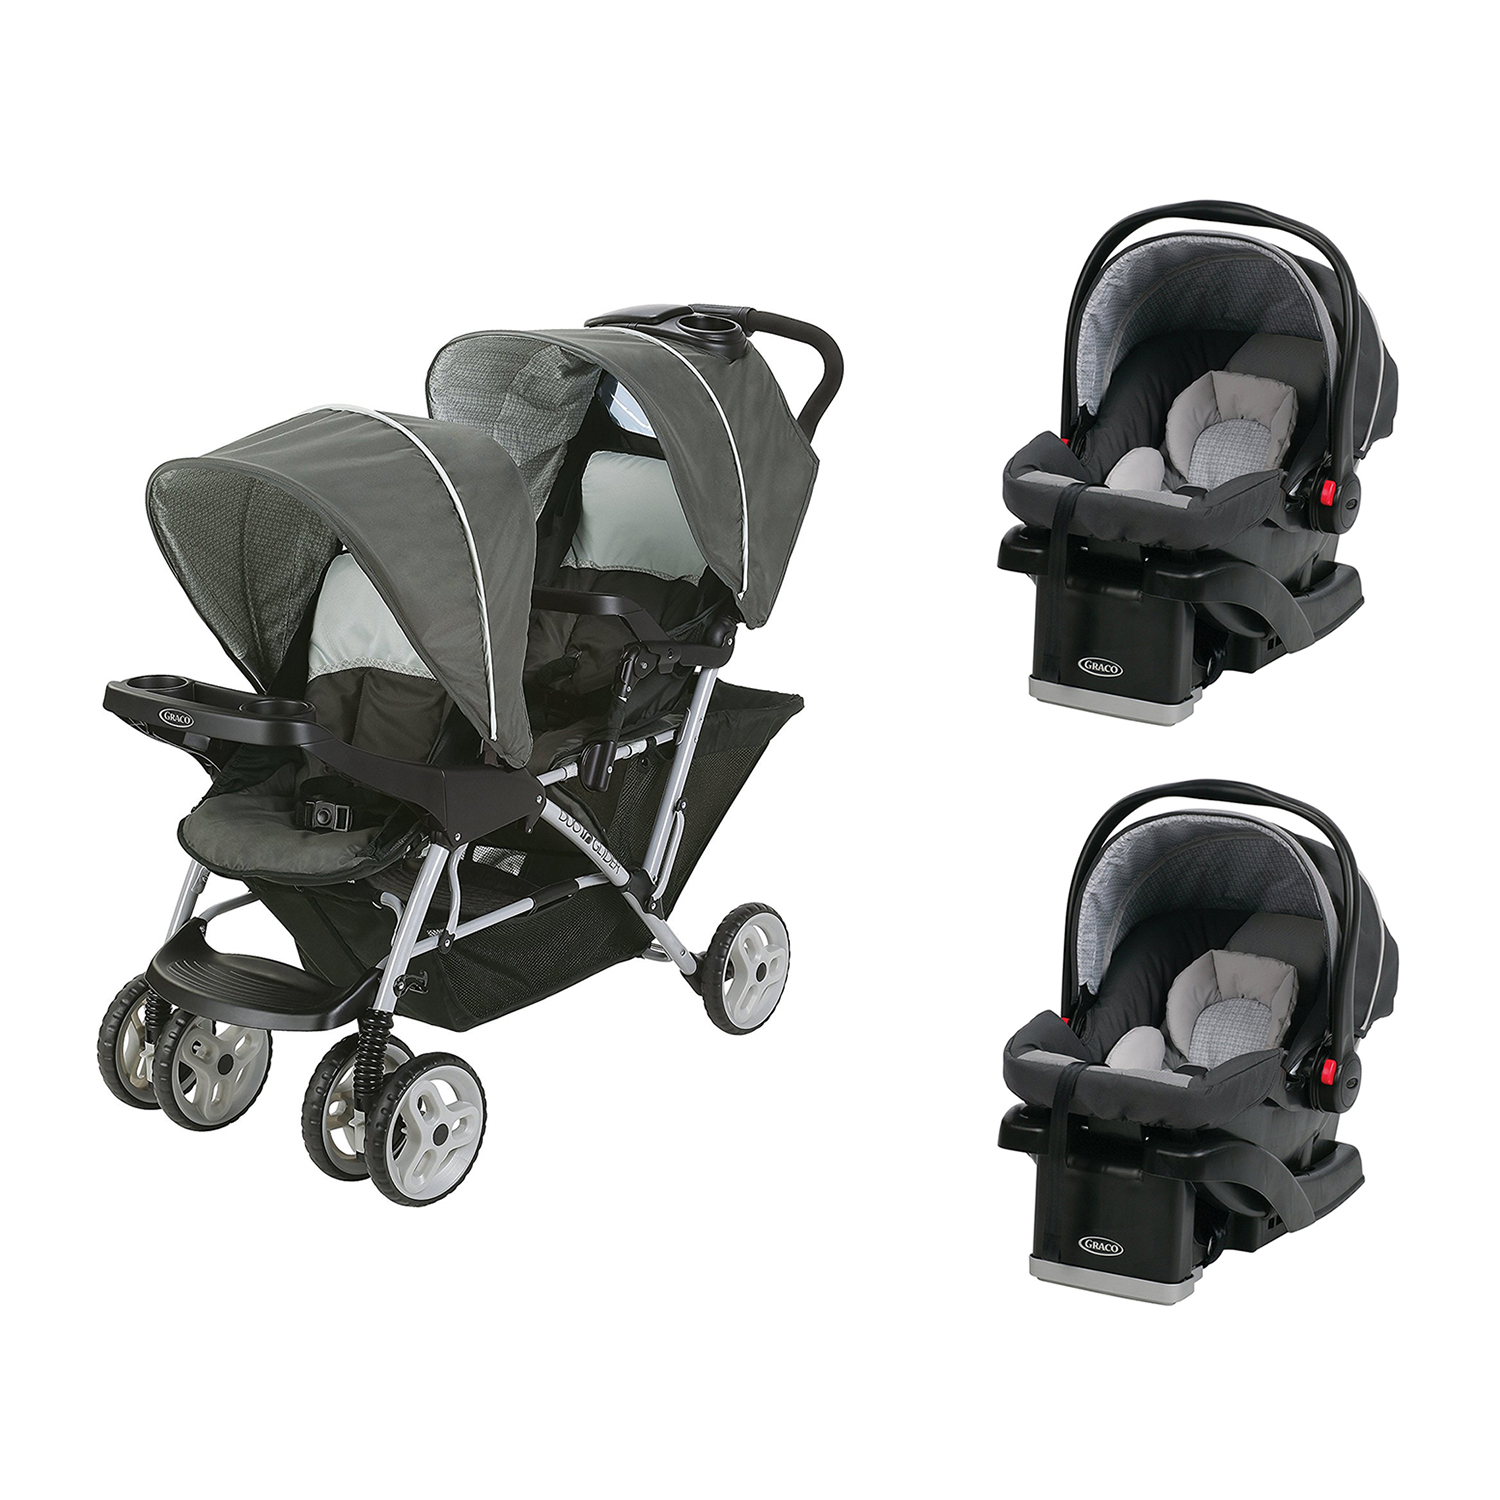 Graco DuoGlider Click Double Stroller + SnugRide Car Seats Travel System-Glacier by Graco